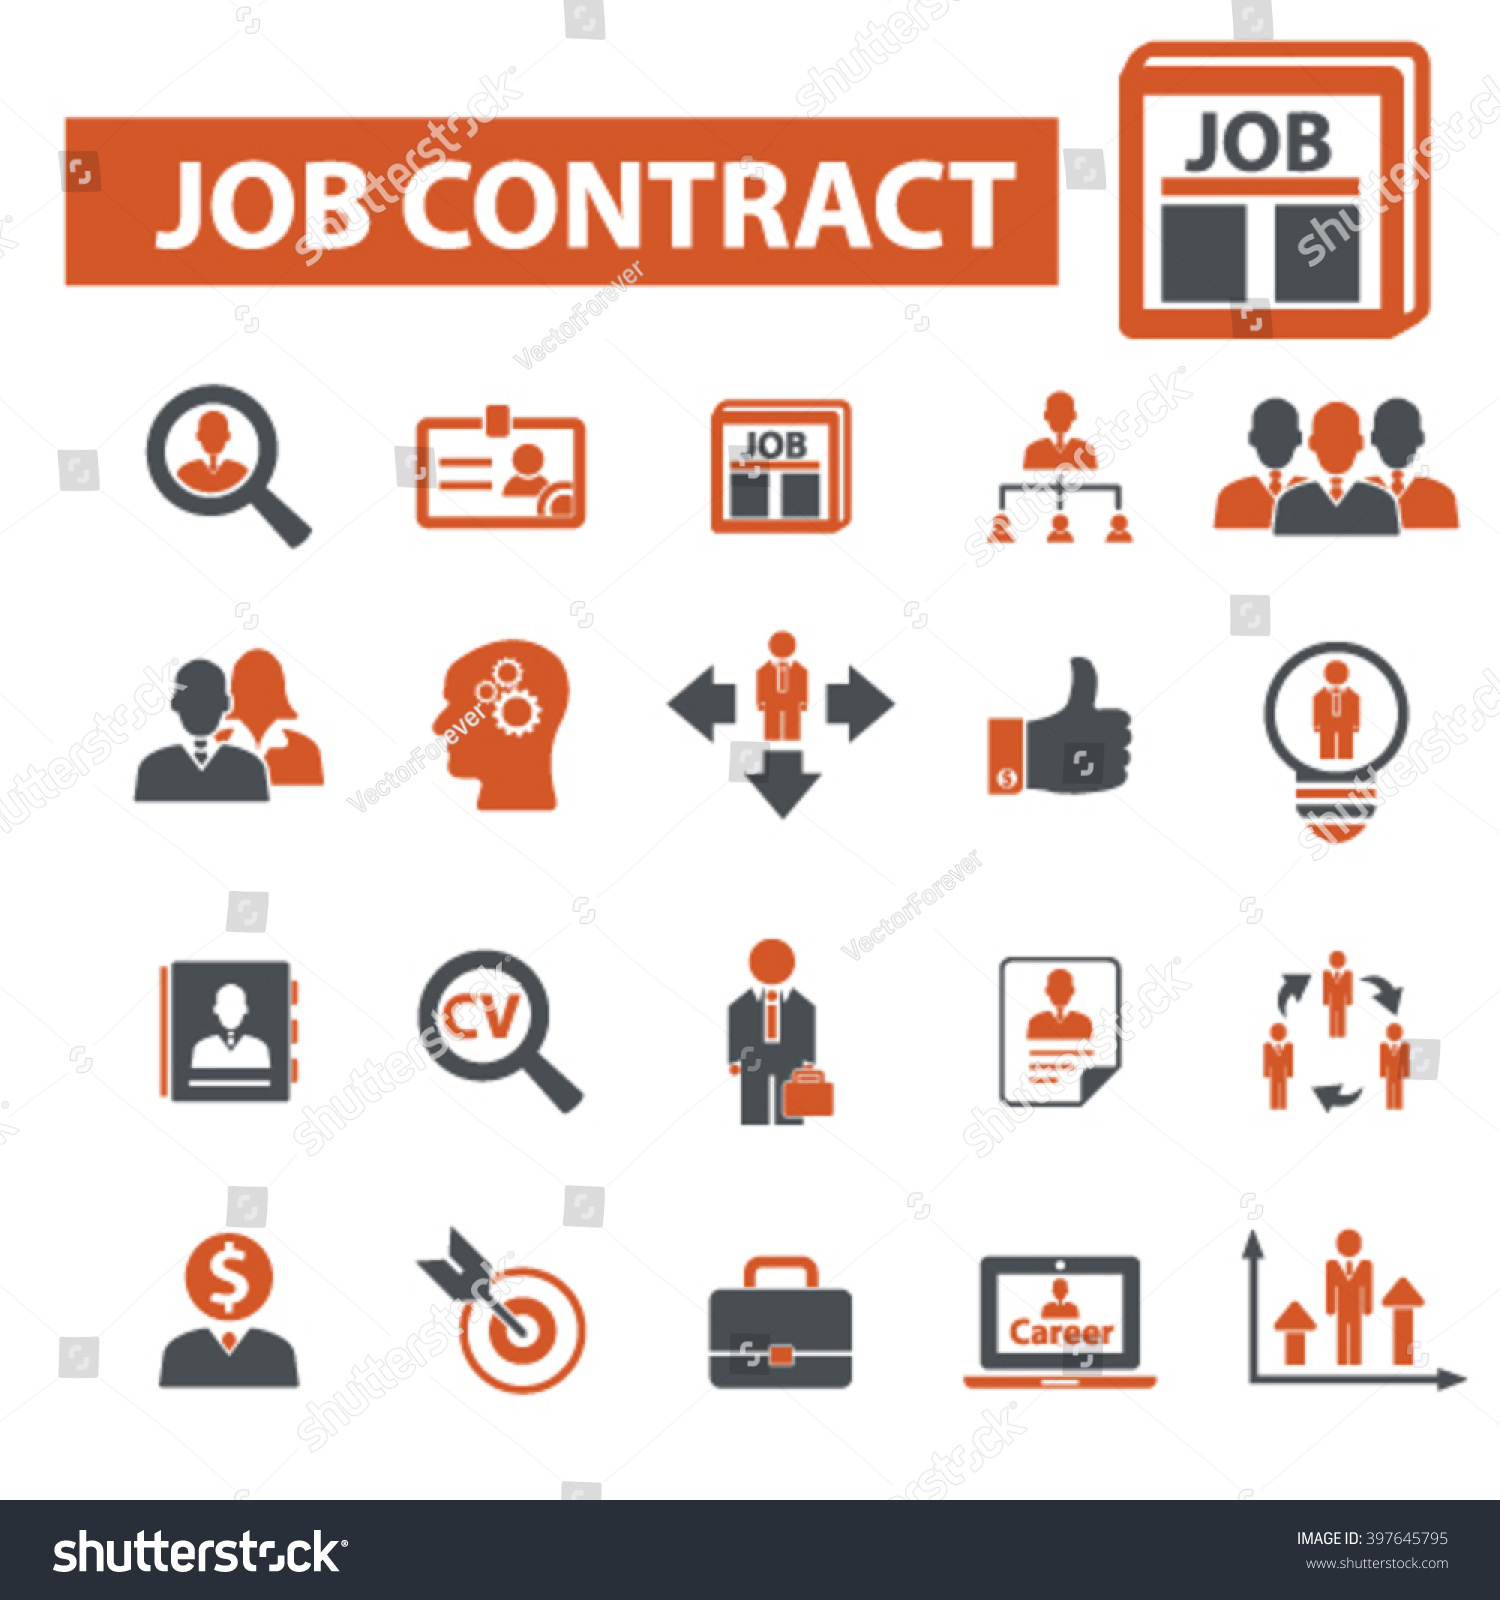 cv business development manager italiano professional resume cv business development manager italiano s manager cv example dayjob job contract icons stock vector 397645795